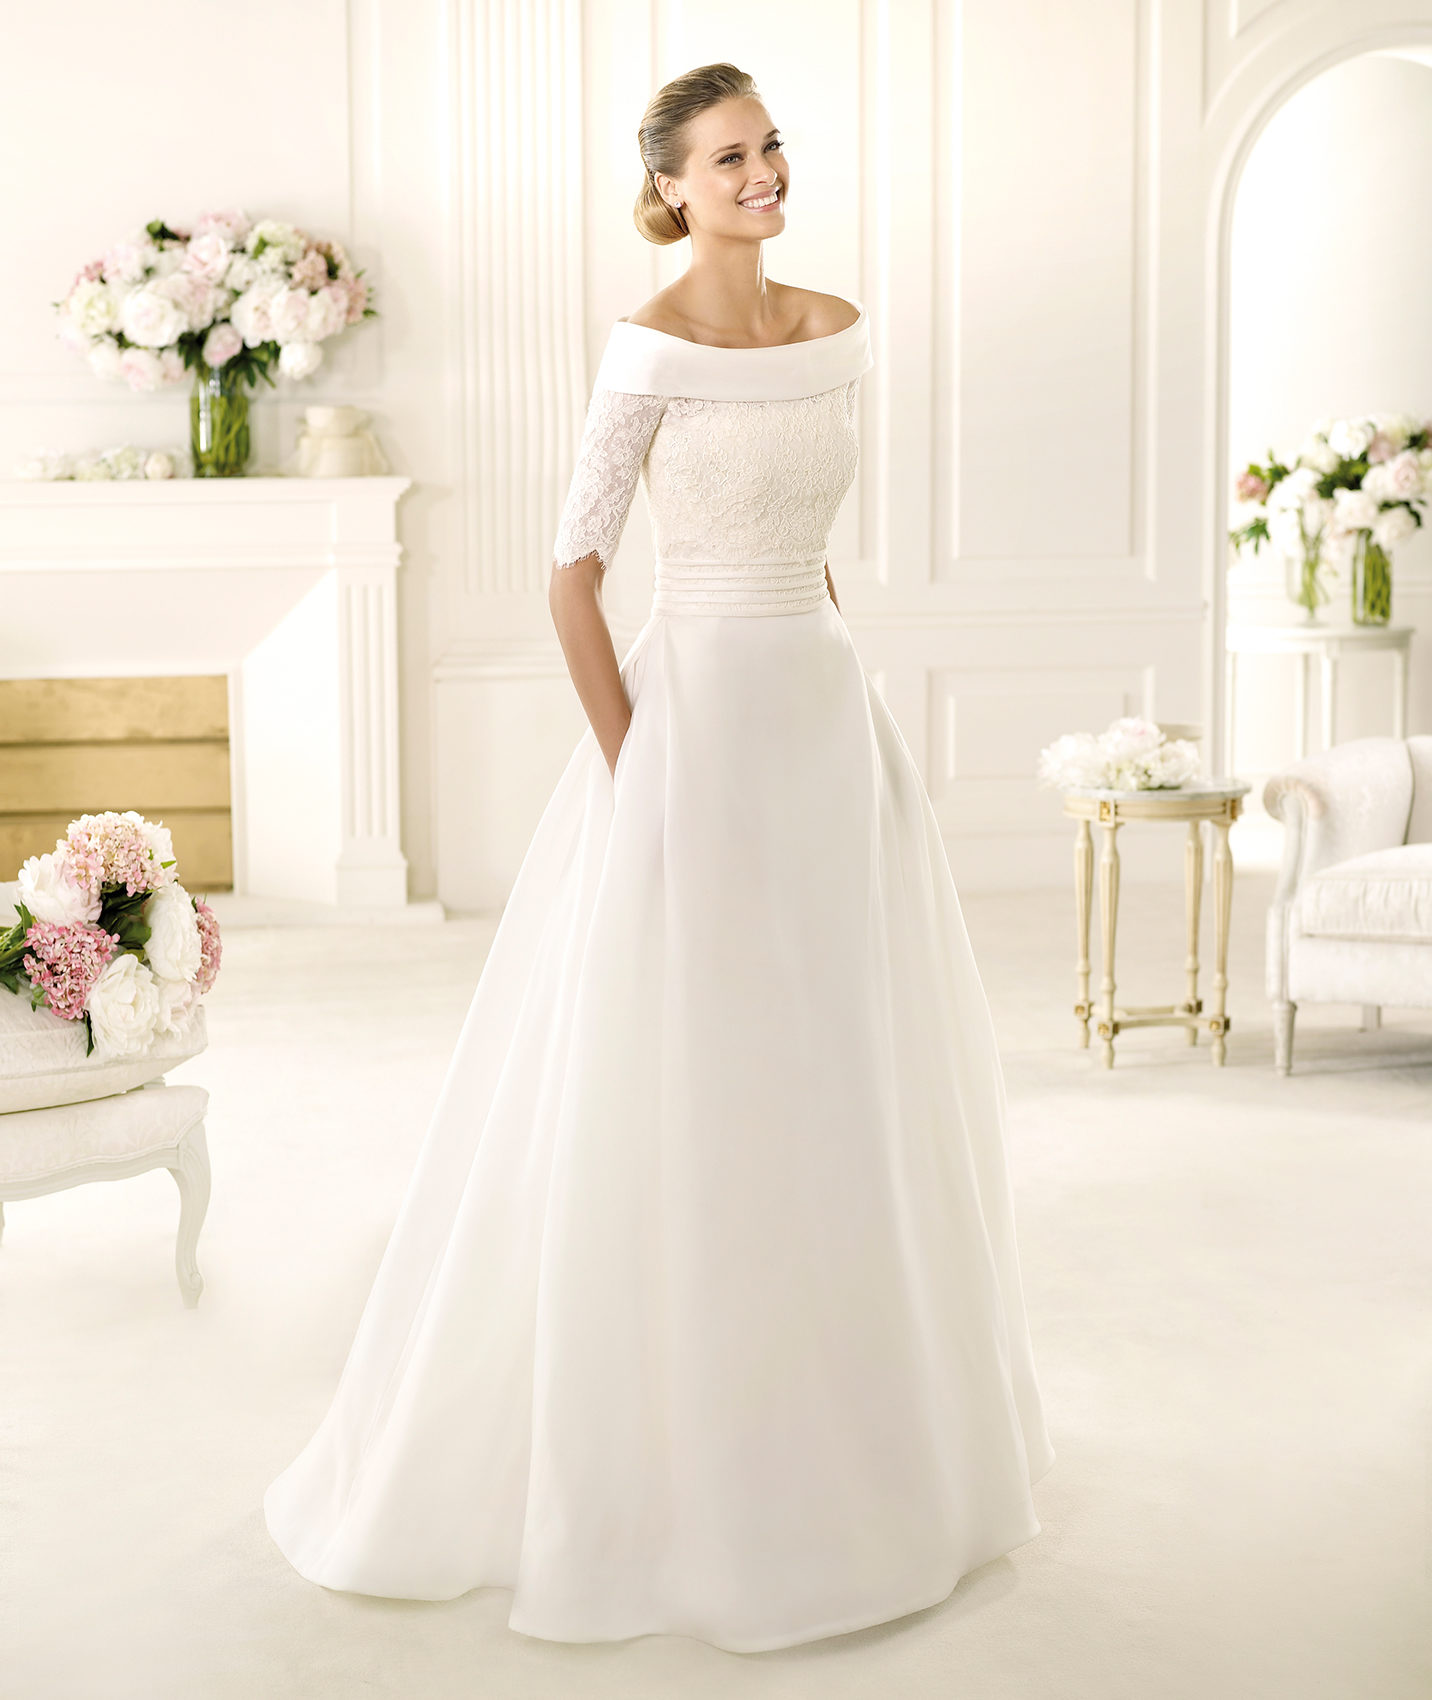 2013-manuel-mota-wedding-dress-for-pronovias.original